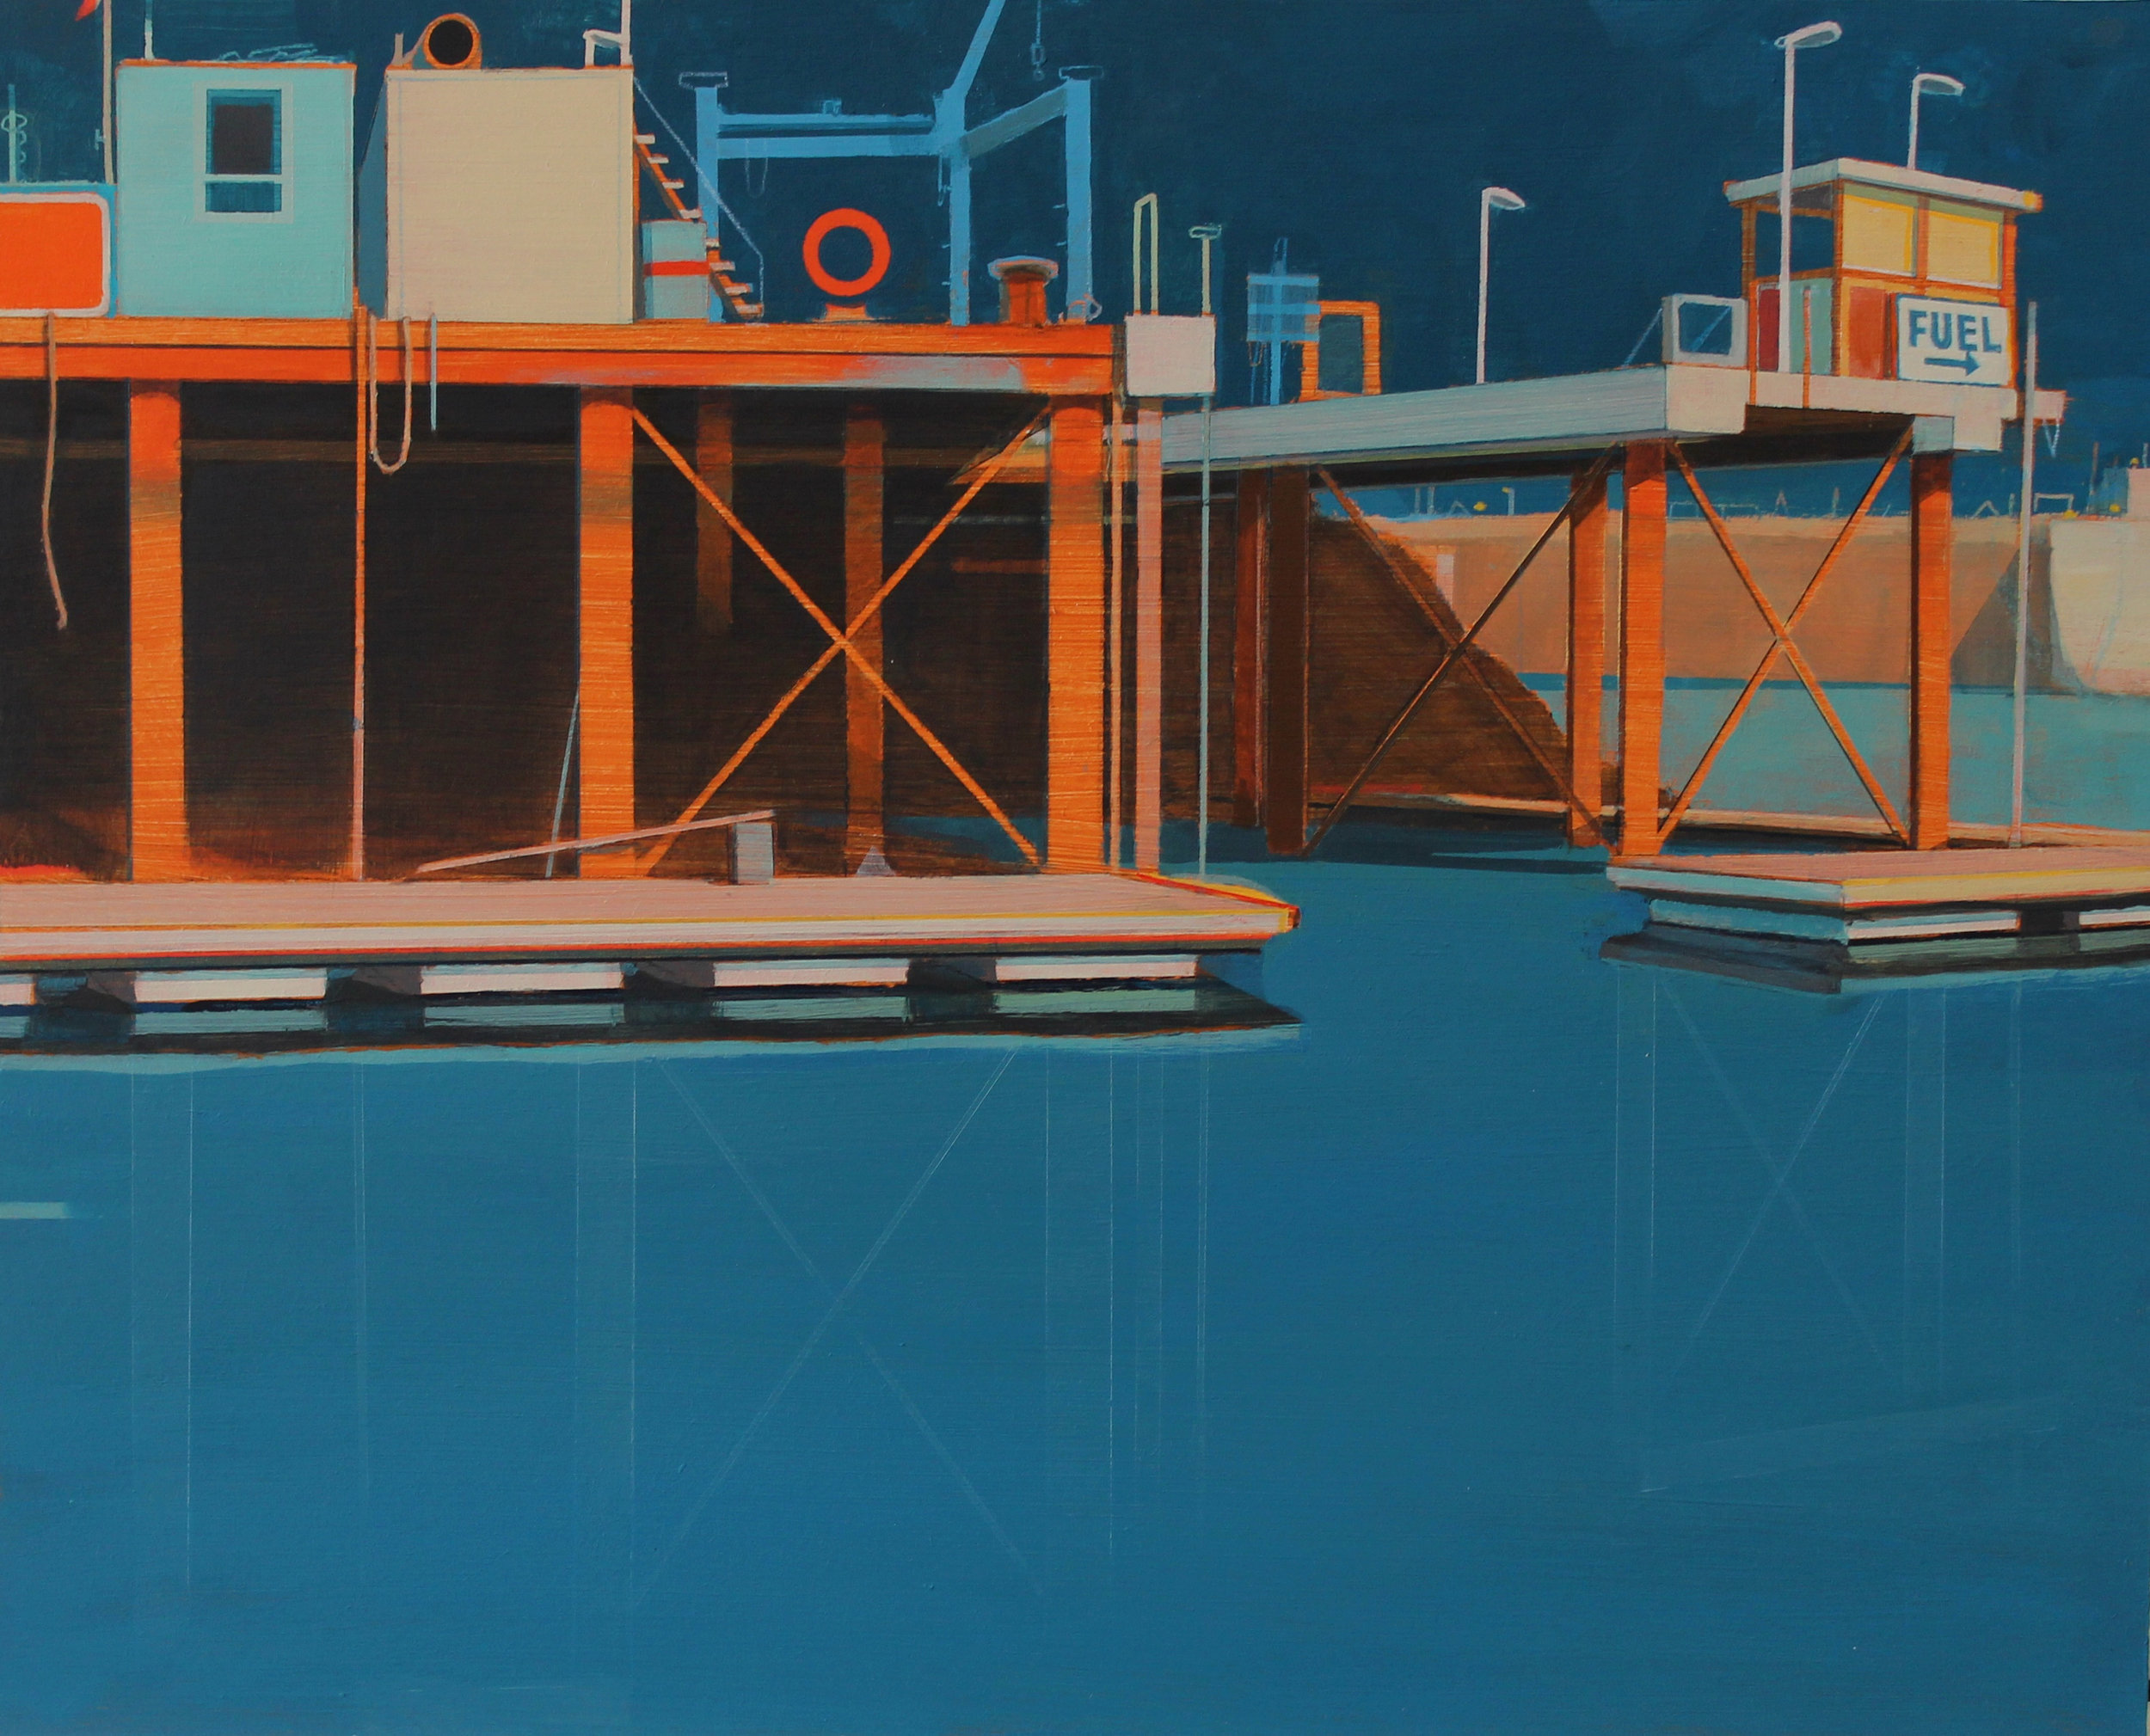 Dockyard, Plymouth, acrylic on board, 36x45 cm, £sold.